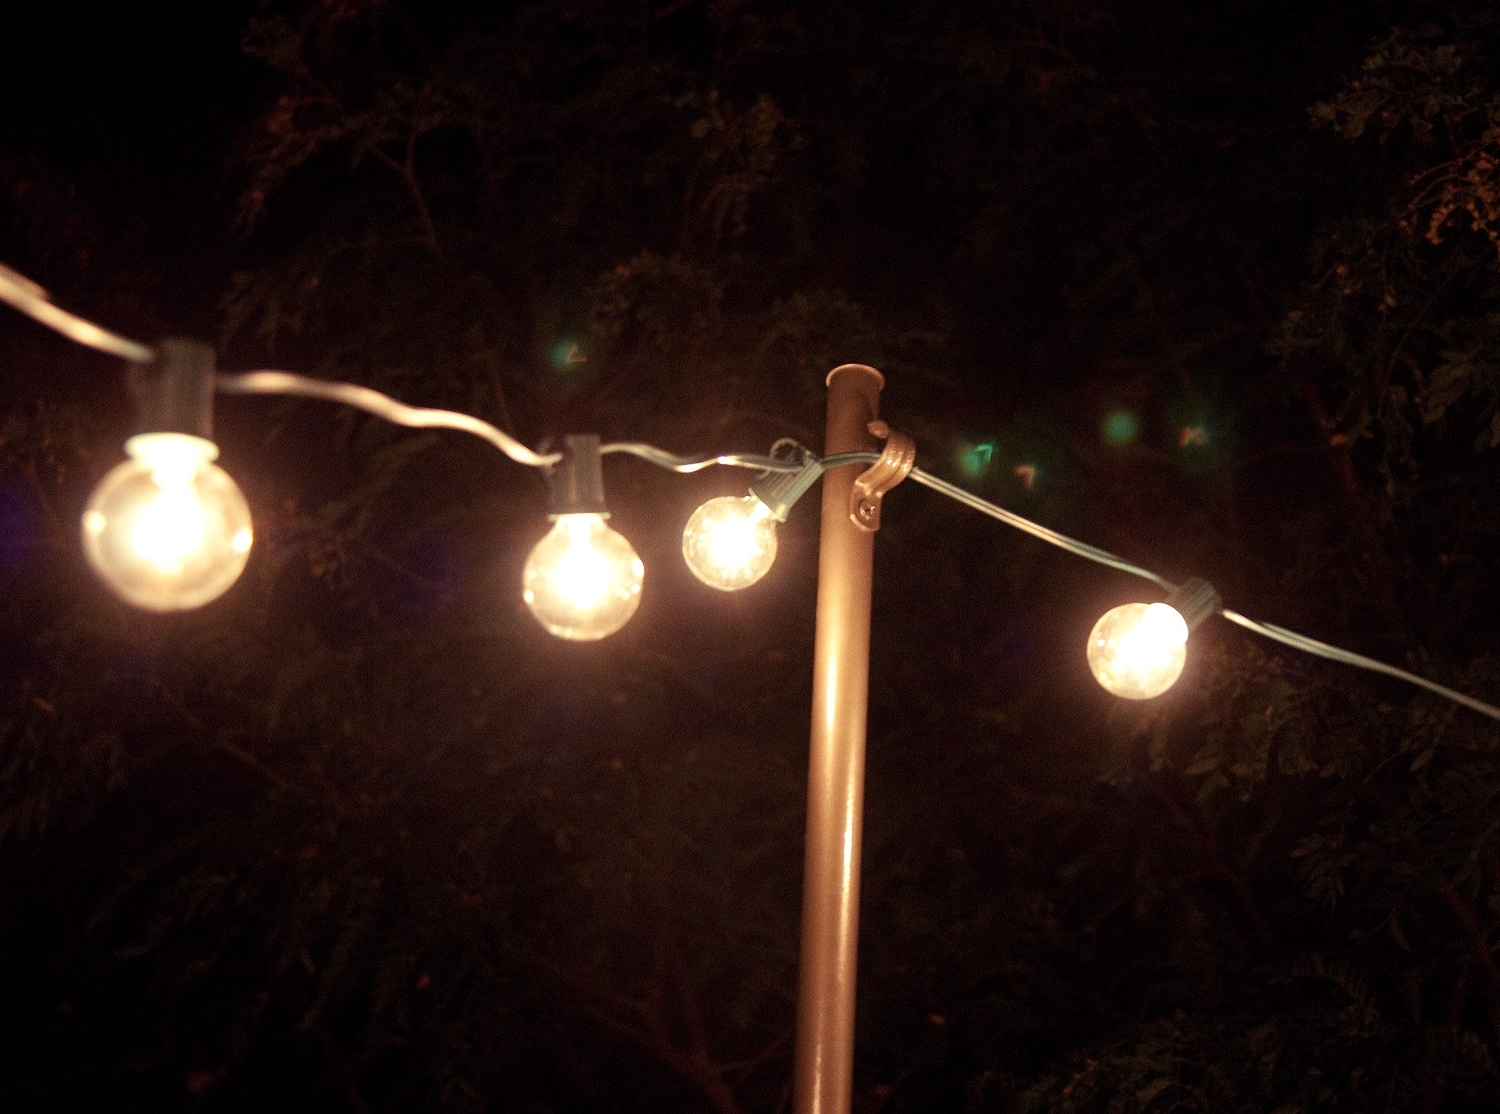 Solar Patio Lights Home Depot @bright July Diy Outdoor String Lights In Most Current Outdoor String Lights At Home Depot (View 19 of 20)